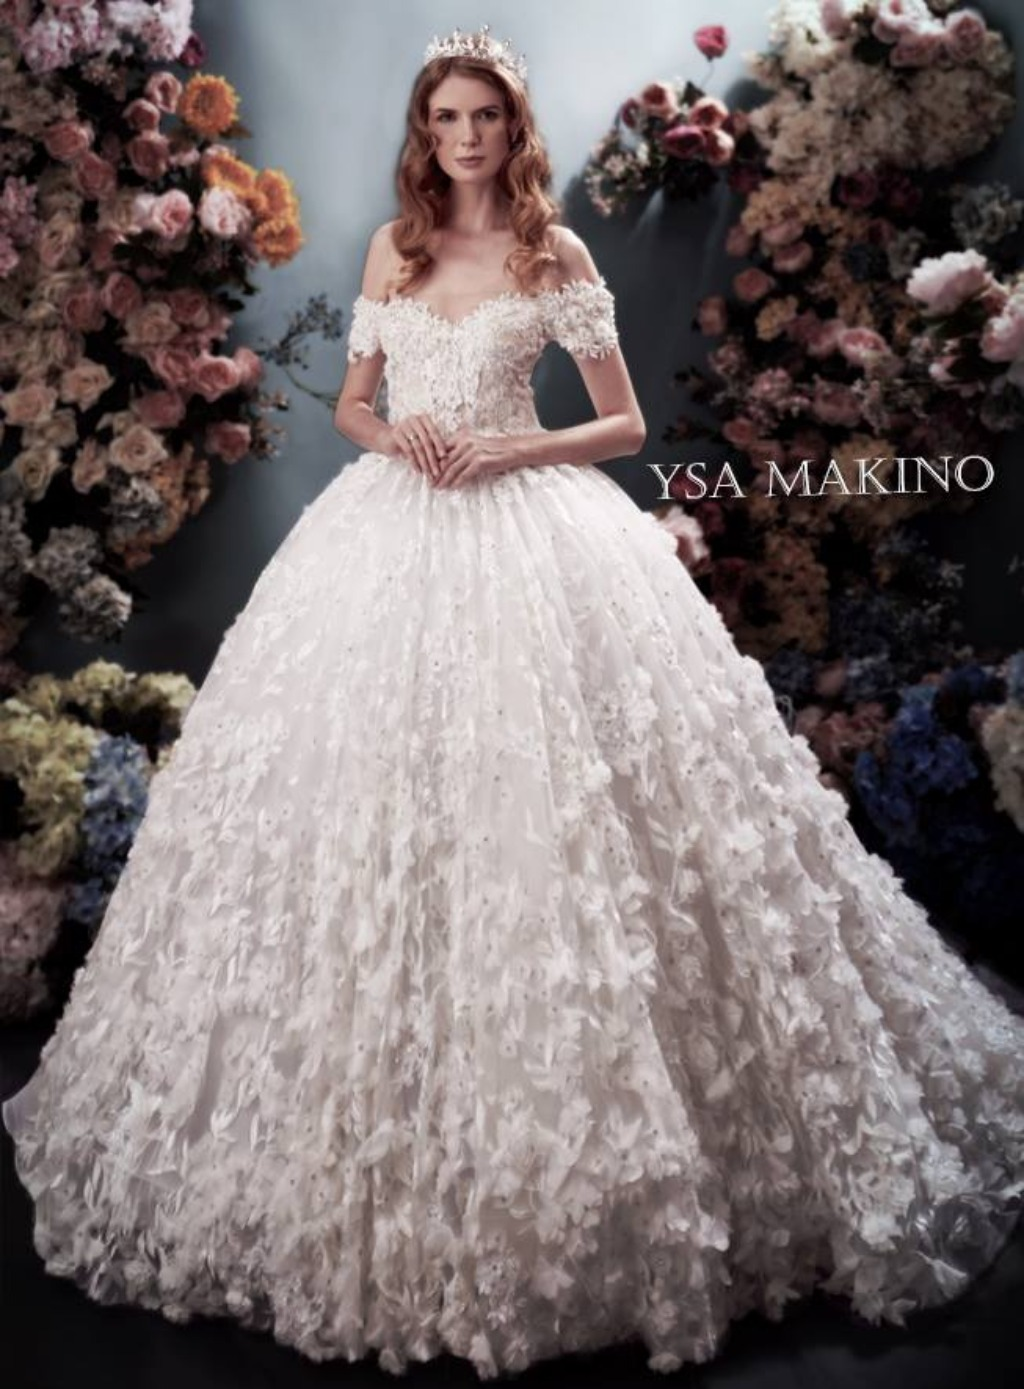 Ysa Makino Bridal & Evening Wear Trunk Show